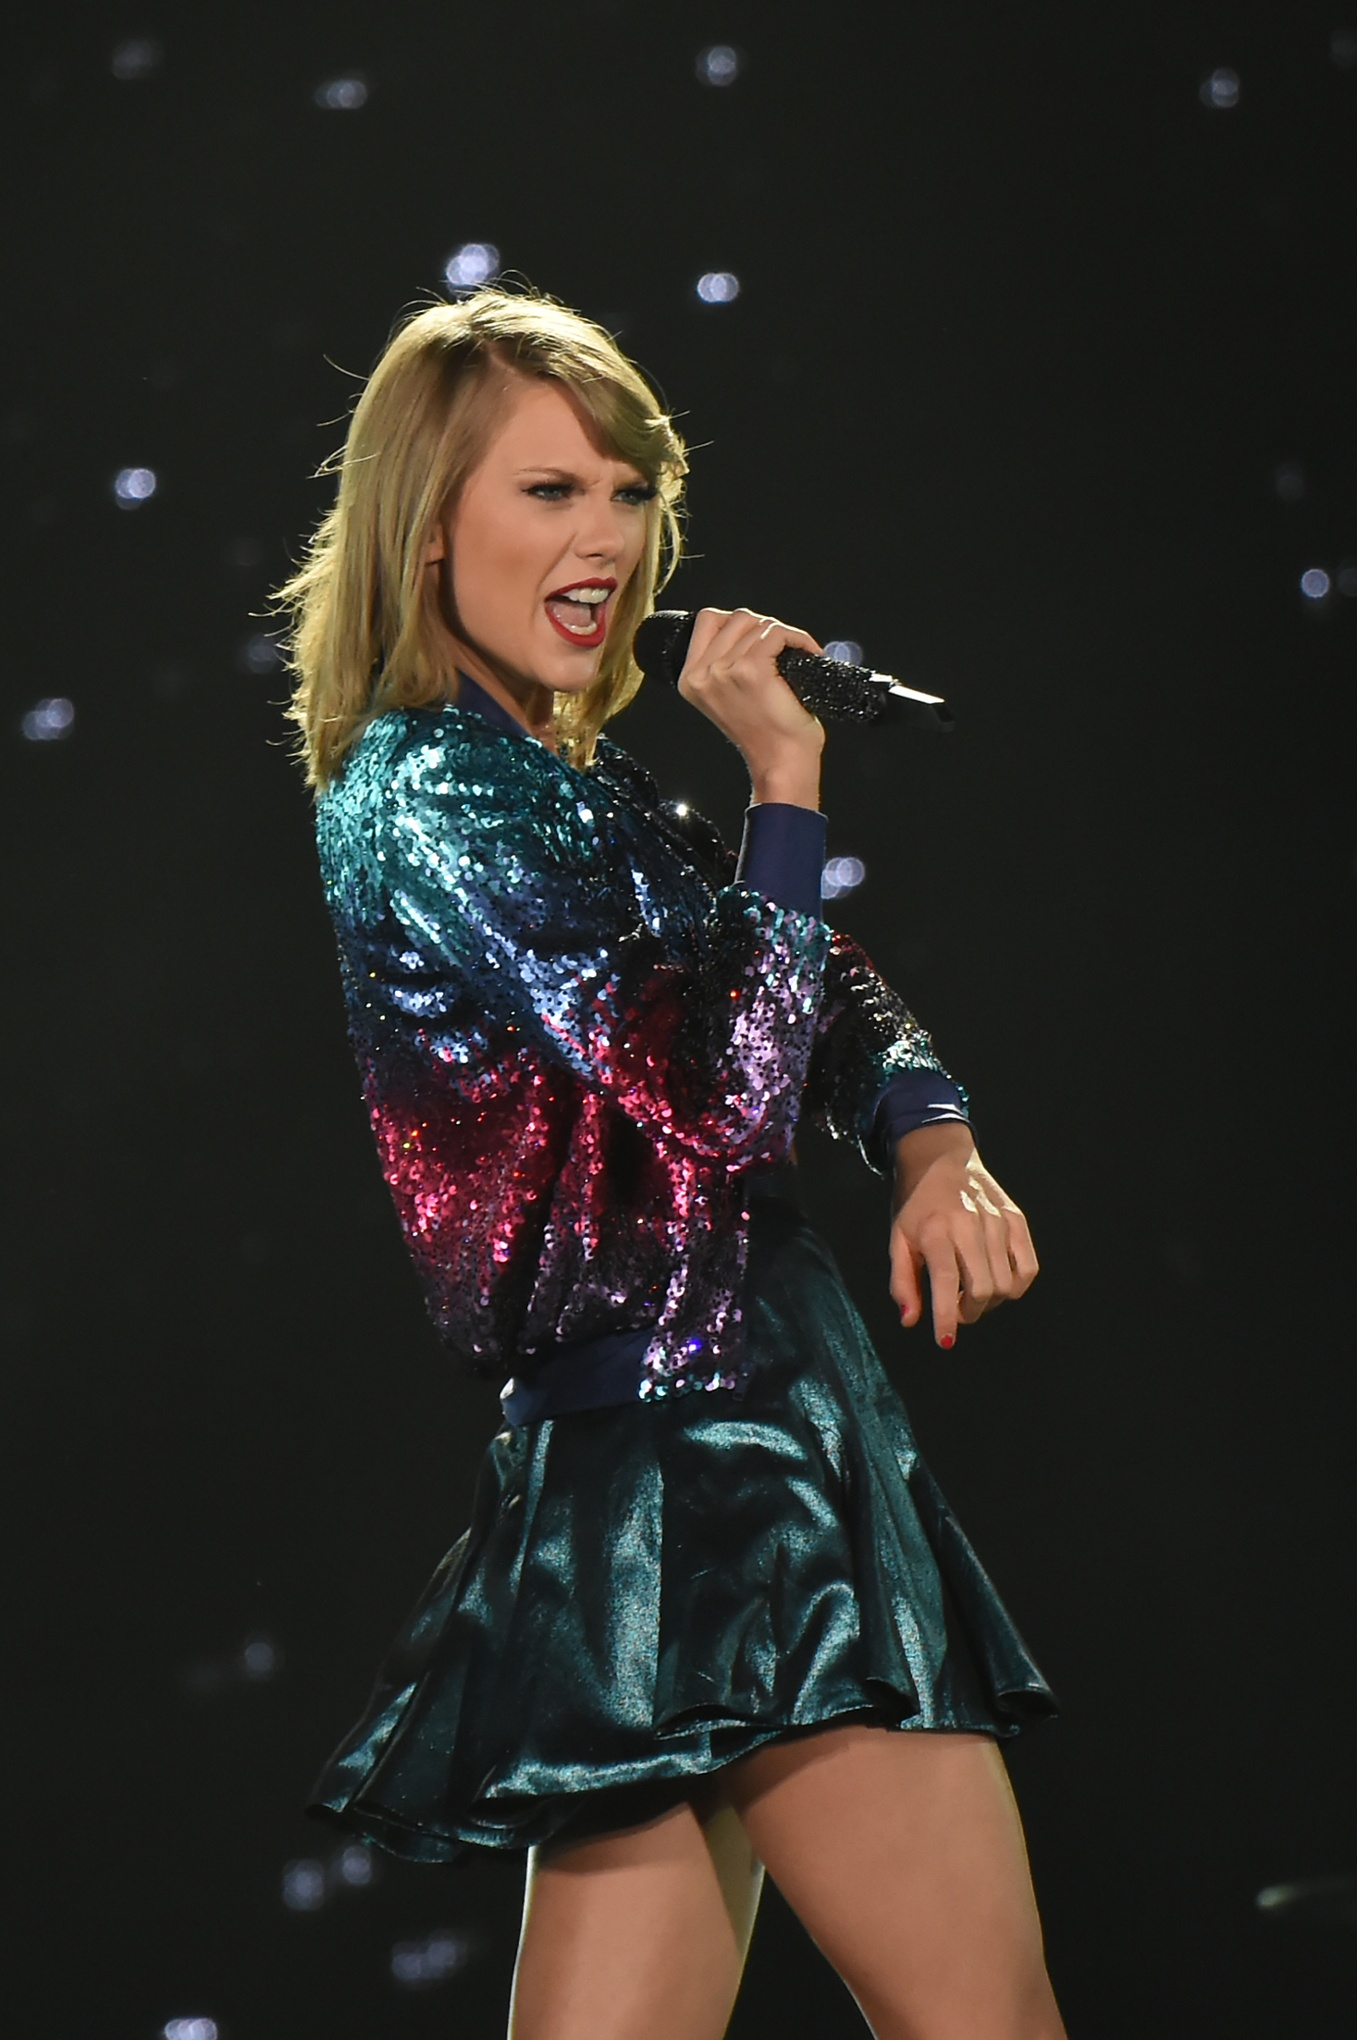 TOKYO, JAPAN - MAY 06:  Taylor Swift performs during The 1989 World Tour at Tokyo Dome at Tokyo Dome on May 6, 2015 in Tokyo, Japan.  (Photo by Jun Sato/Getty Images for TS)